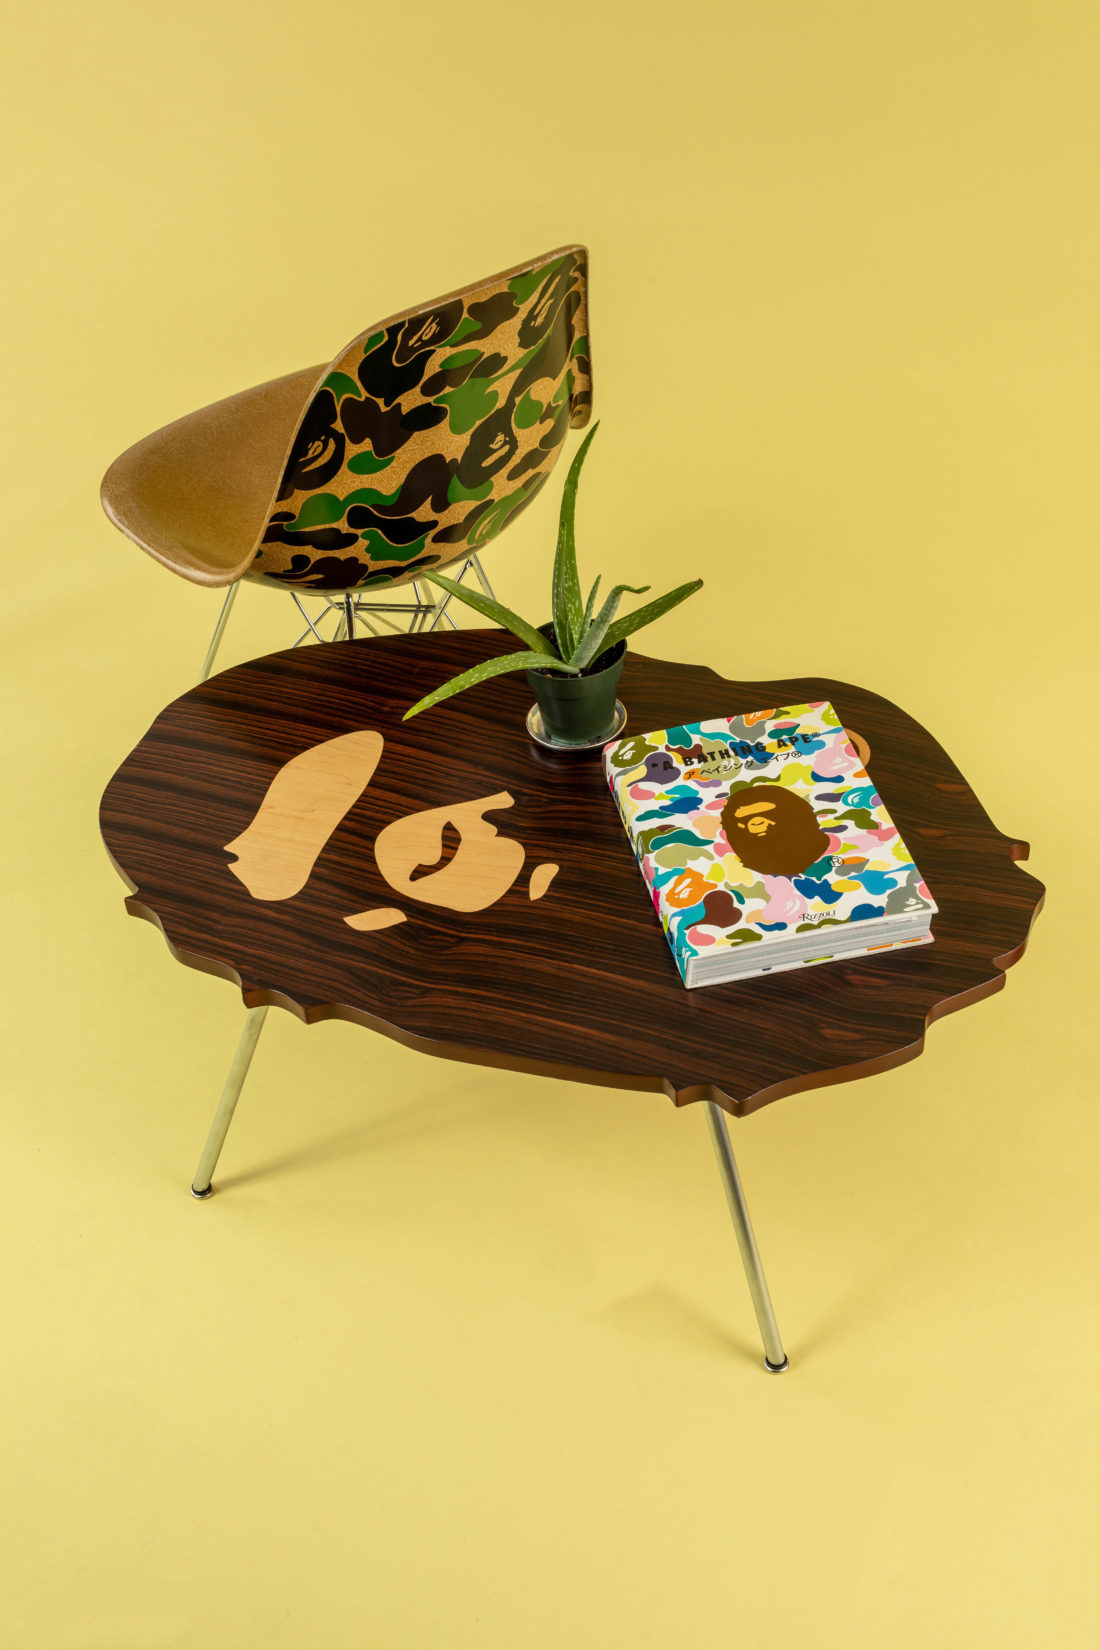 bape living room set